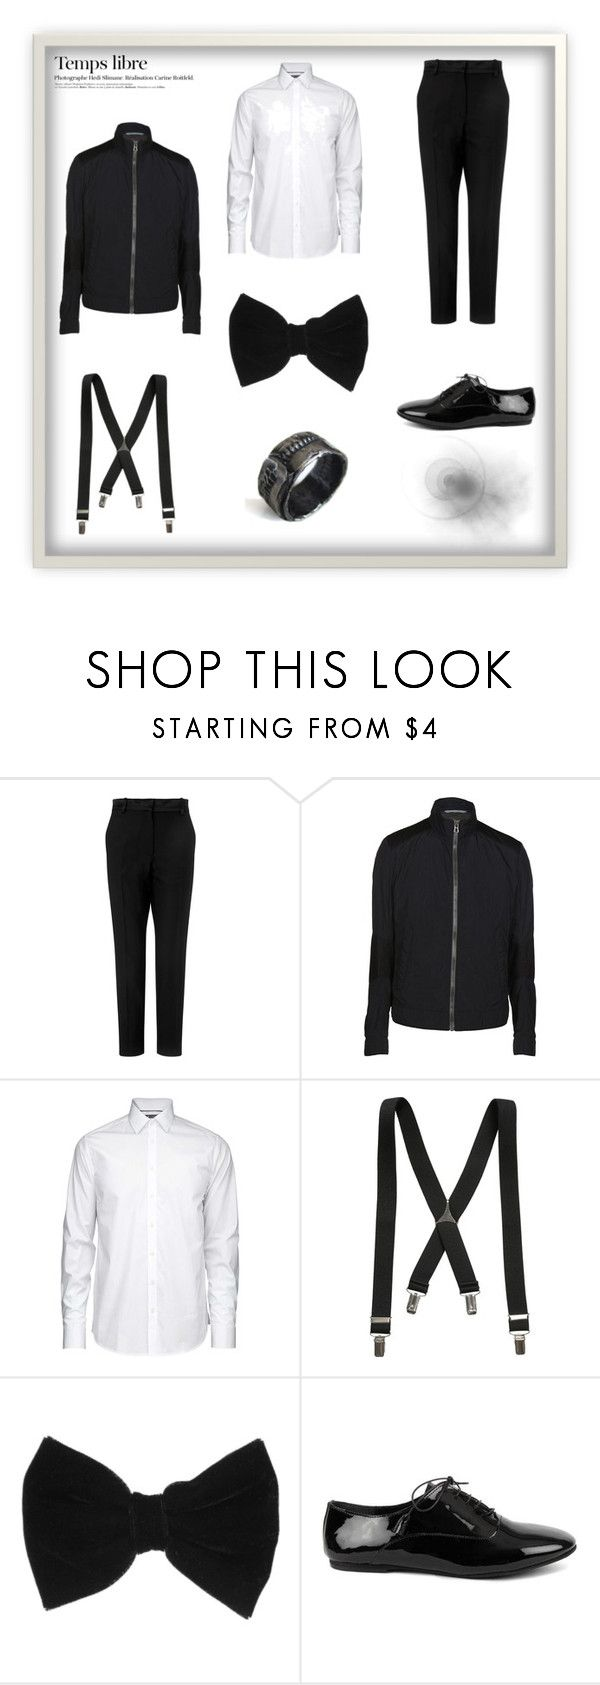 """Para ellos. La fiesta despues de las campanadas"" by jasonegasta ❤ liked on Polyvore featuring Racil, BOSS Orange, claire's, Catherine Marche and Hedi Slimane"